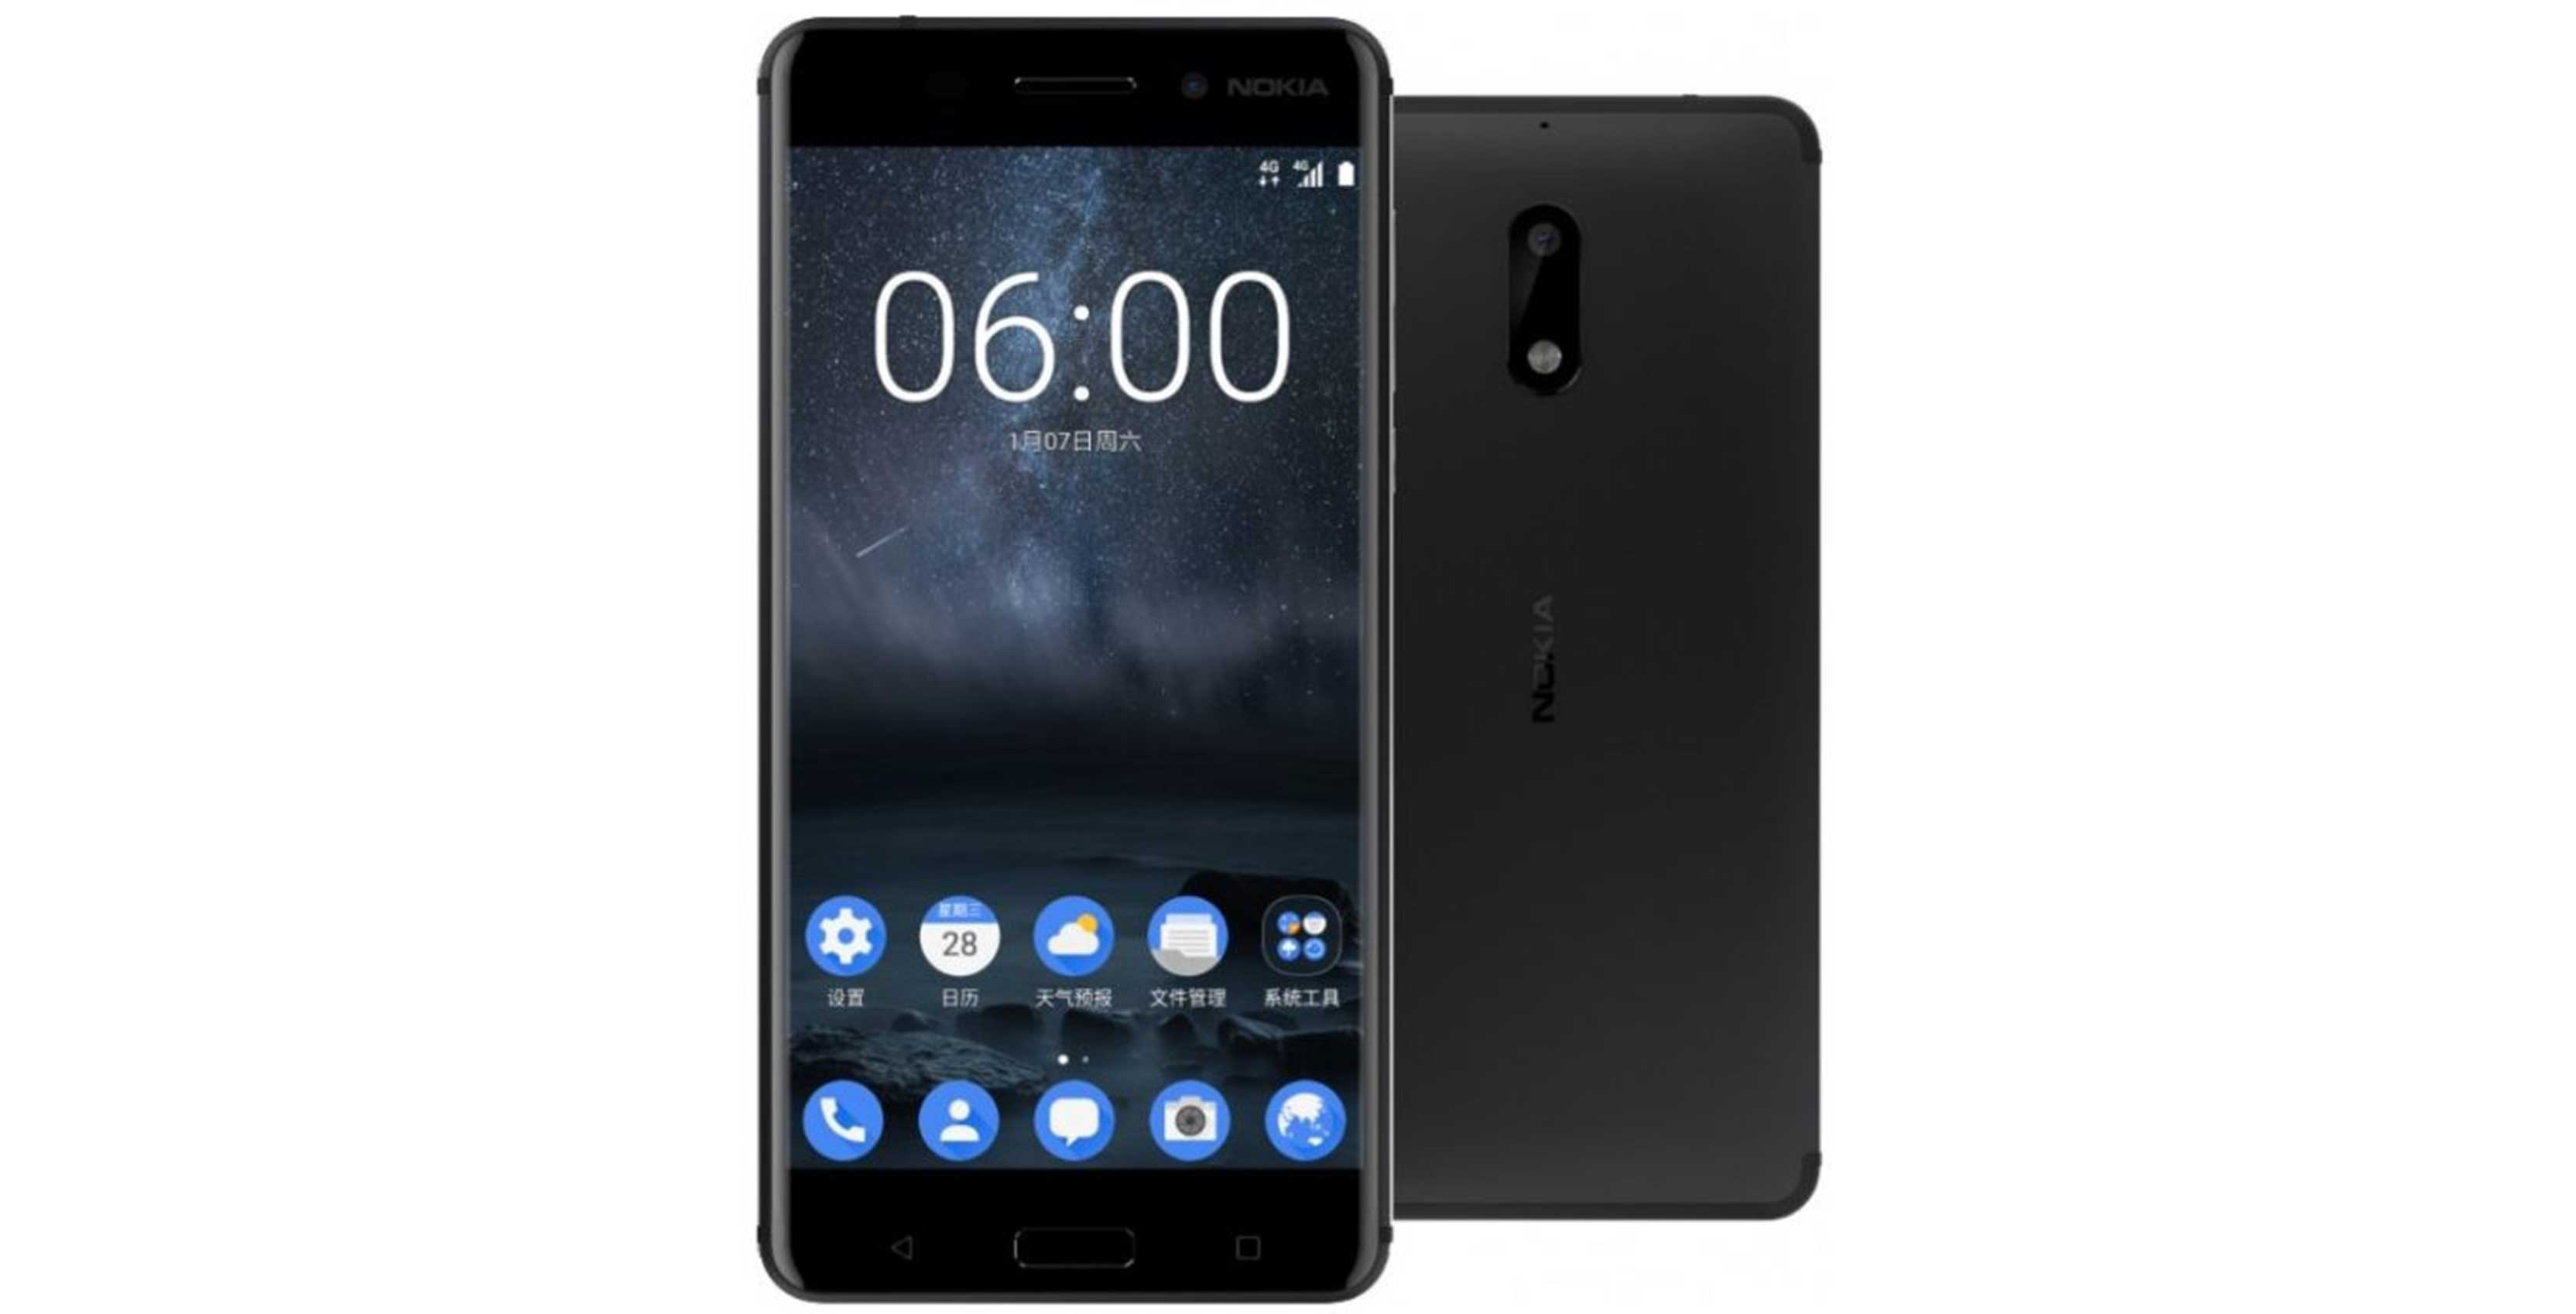 Render of Nokia 6 smartphone